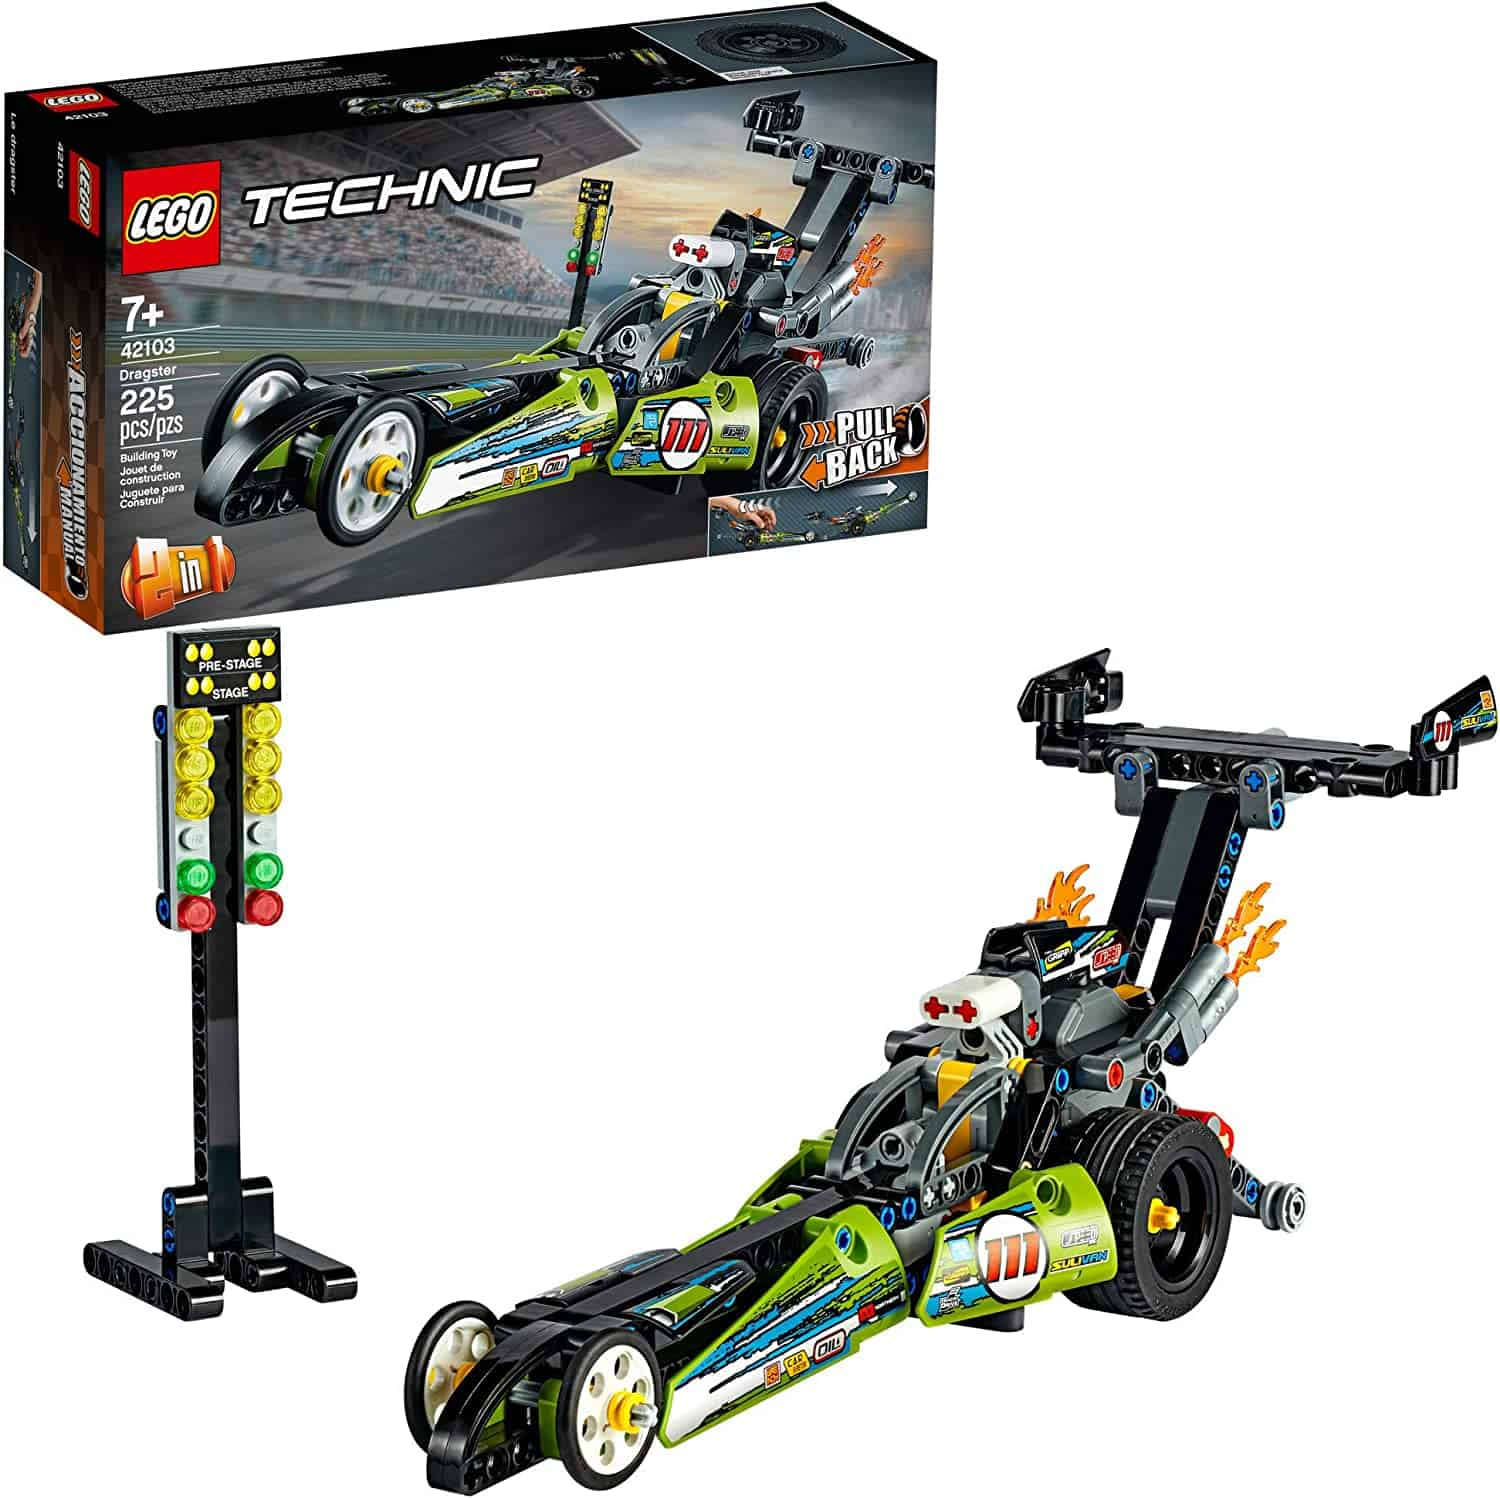 LEGO Technic Dragster Pull-Back Racing Building Kit